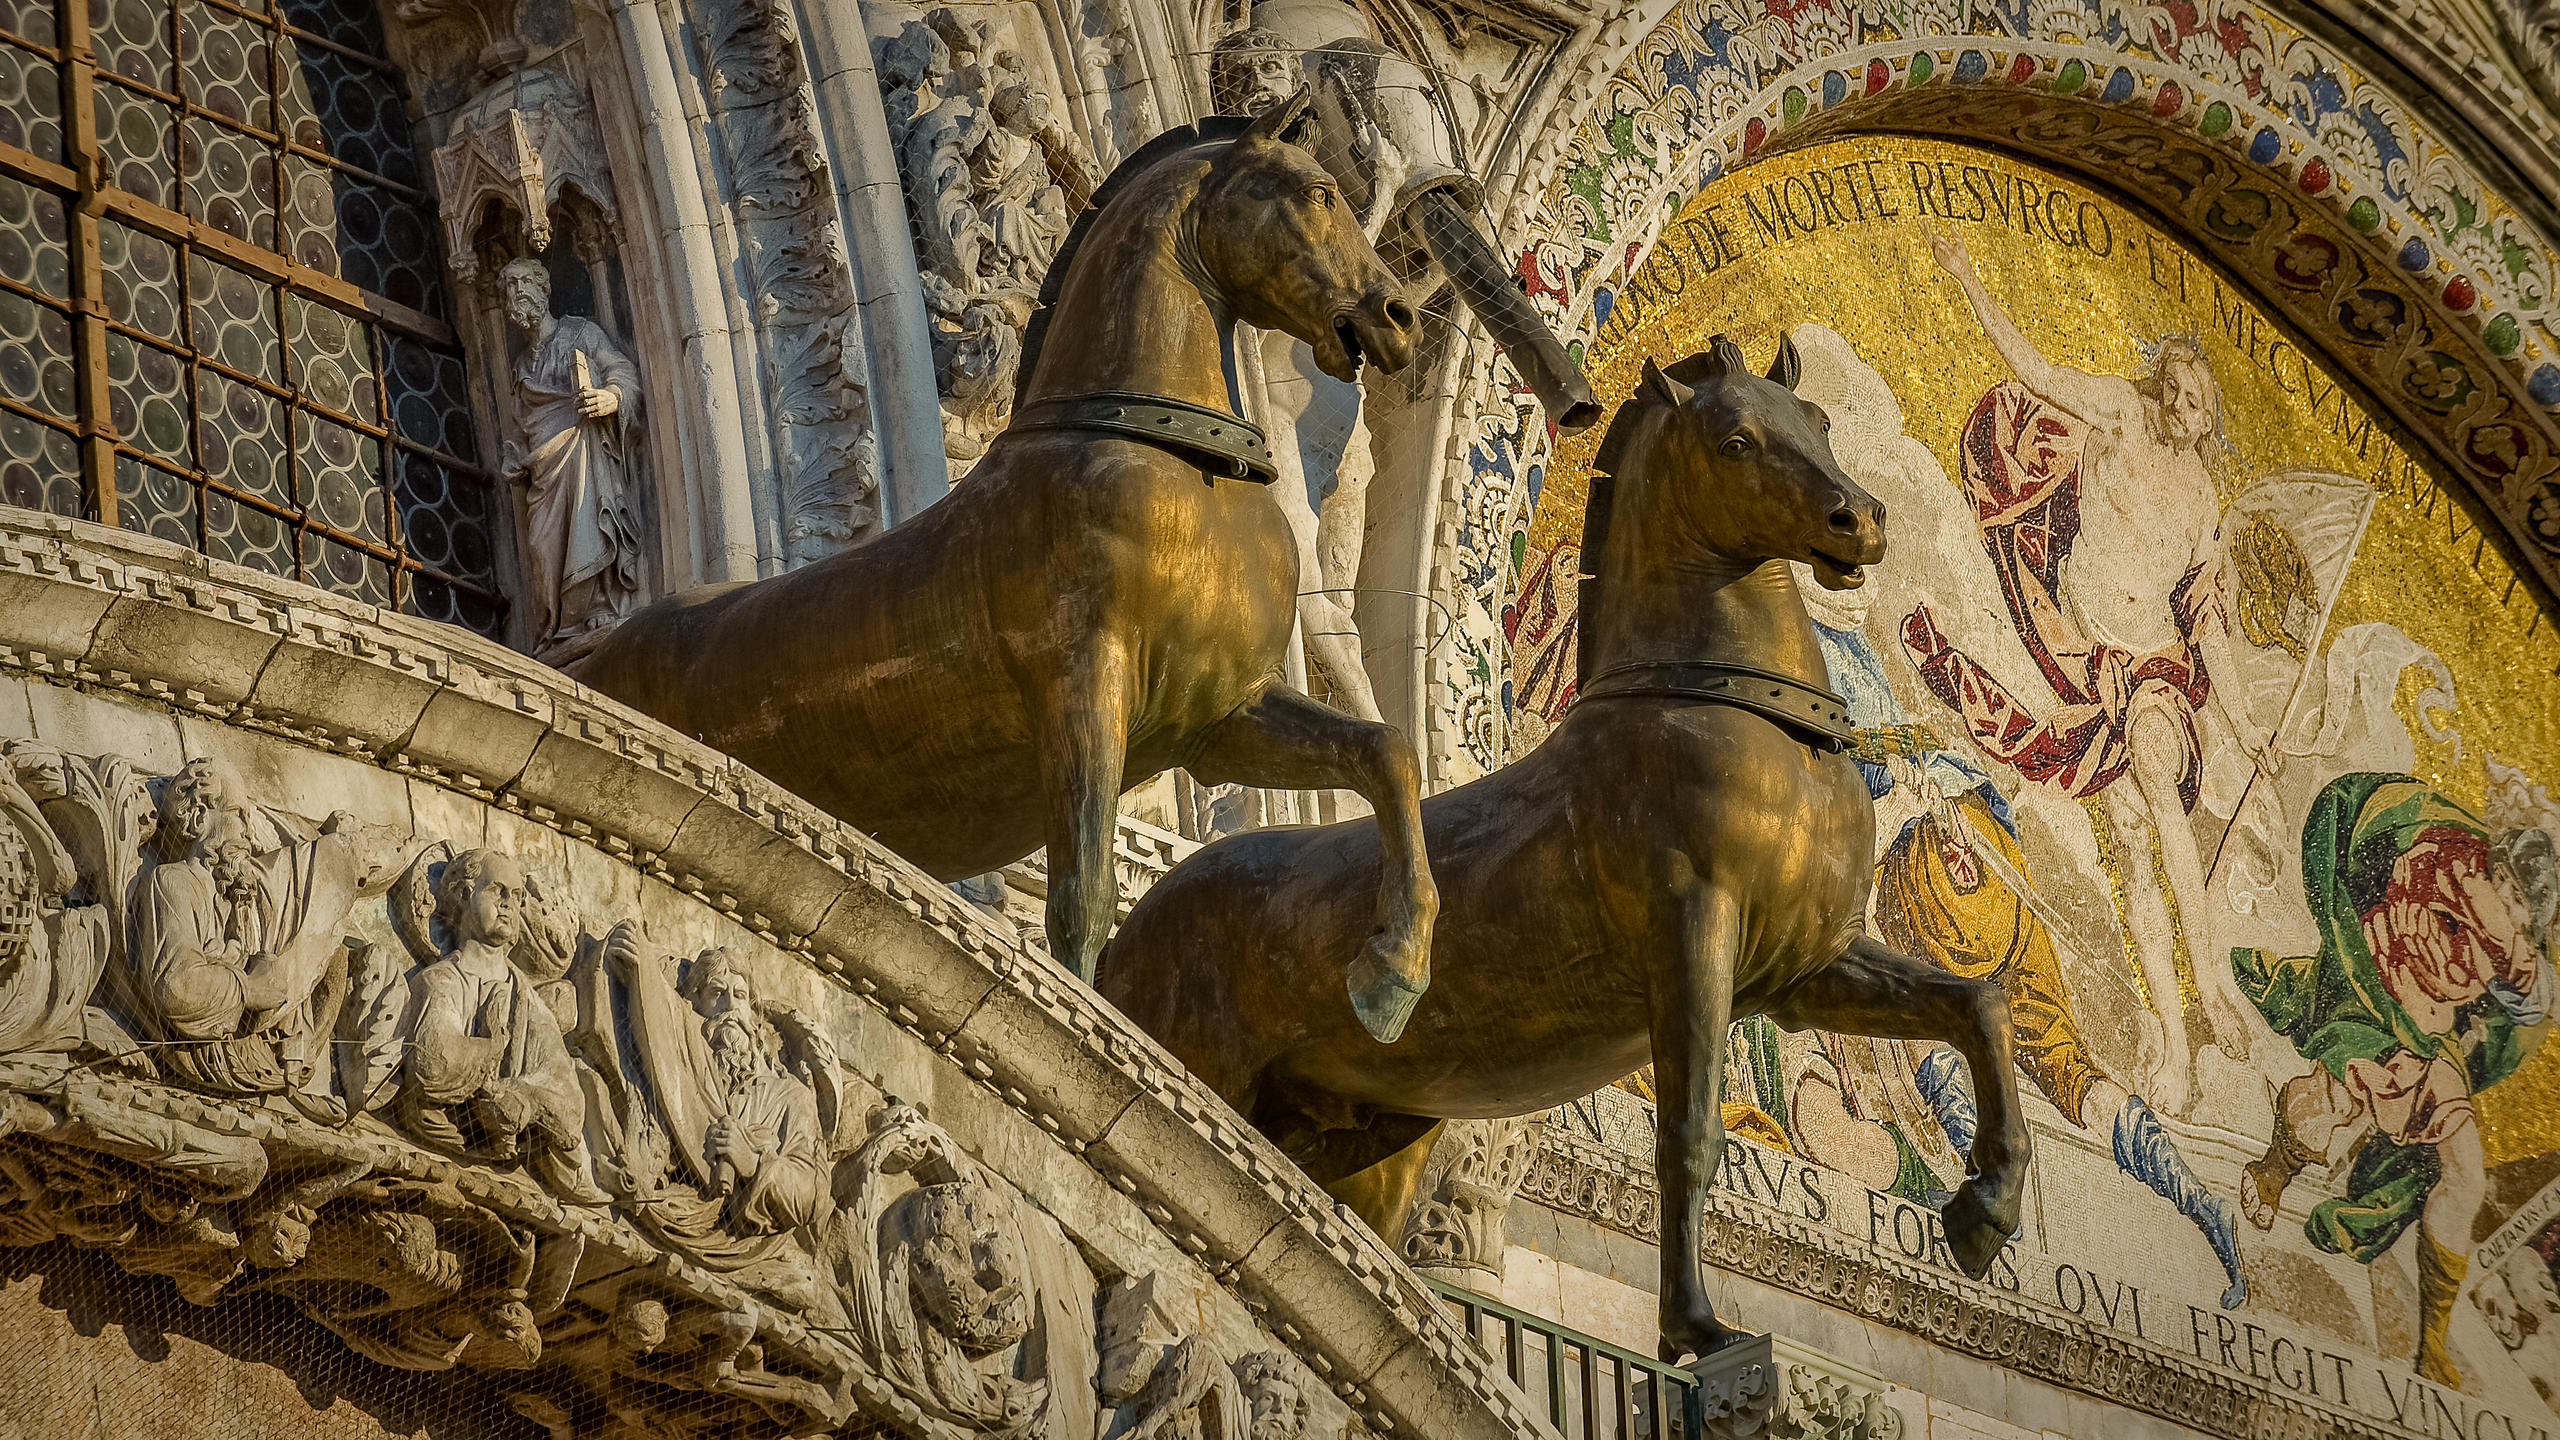 Two of the Four Horses of San Marco - Copies - on the Basilica in Venice